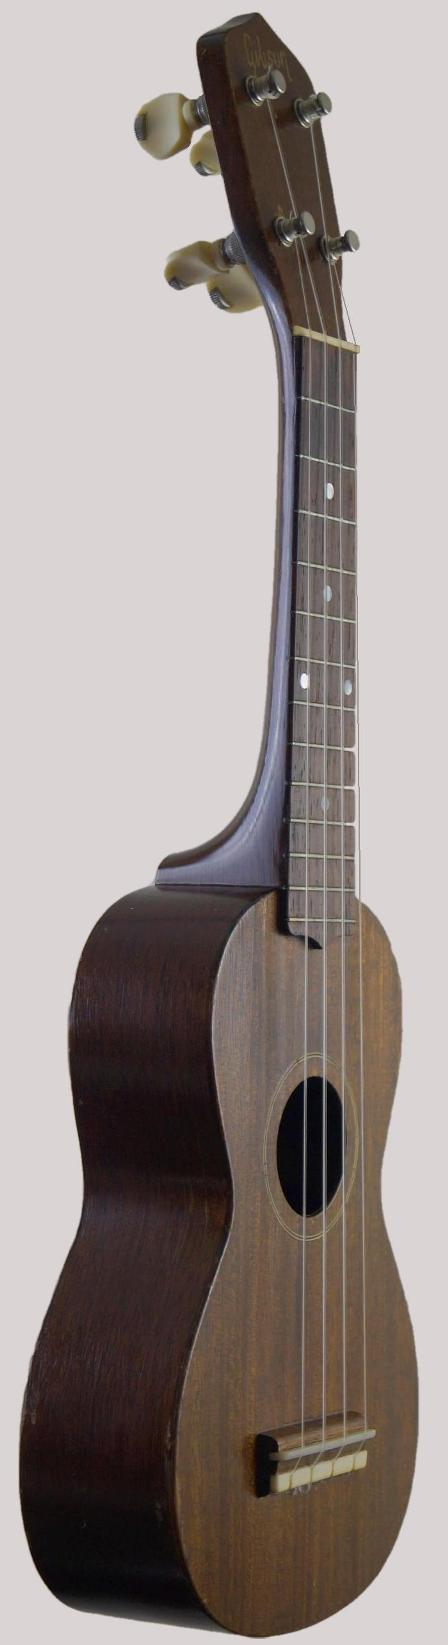 1950's type one war gibson soprano ukulele